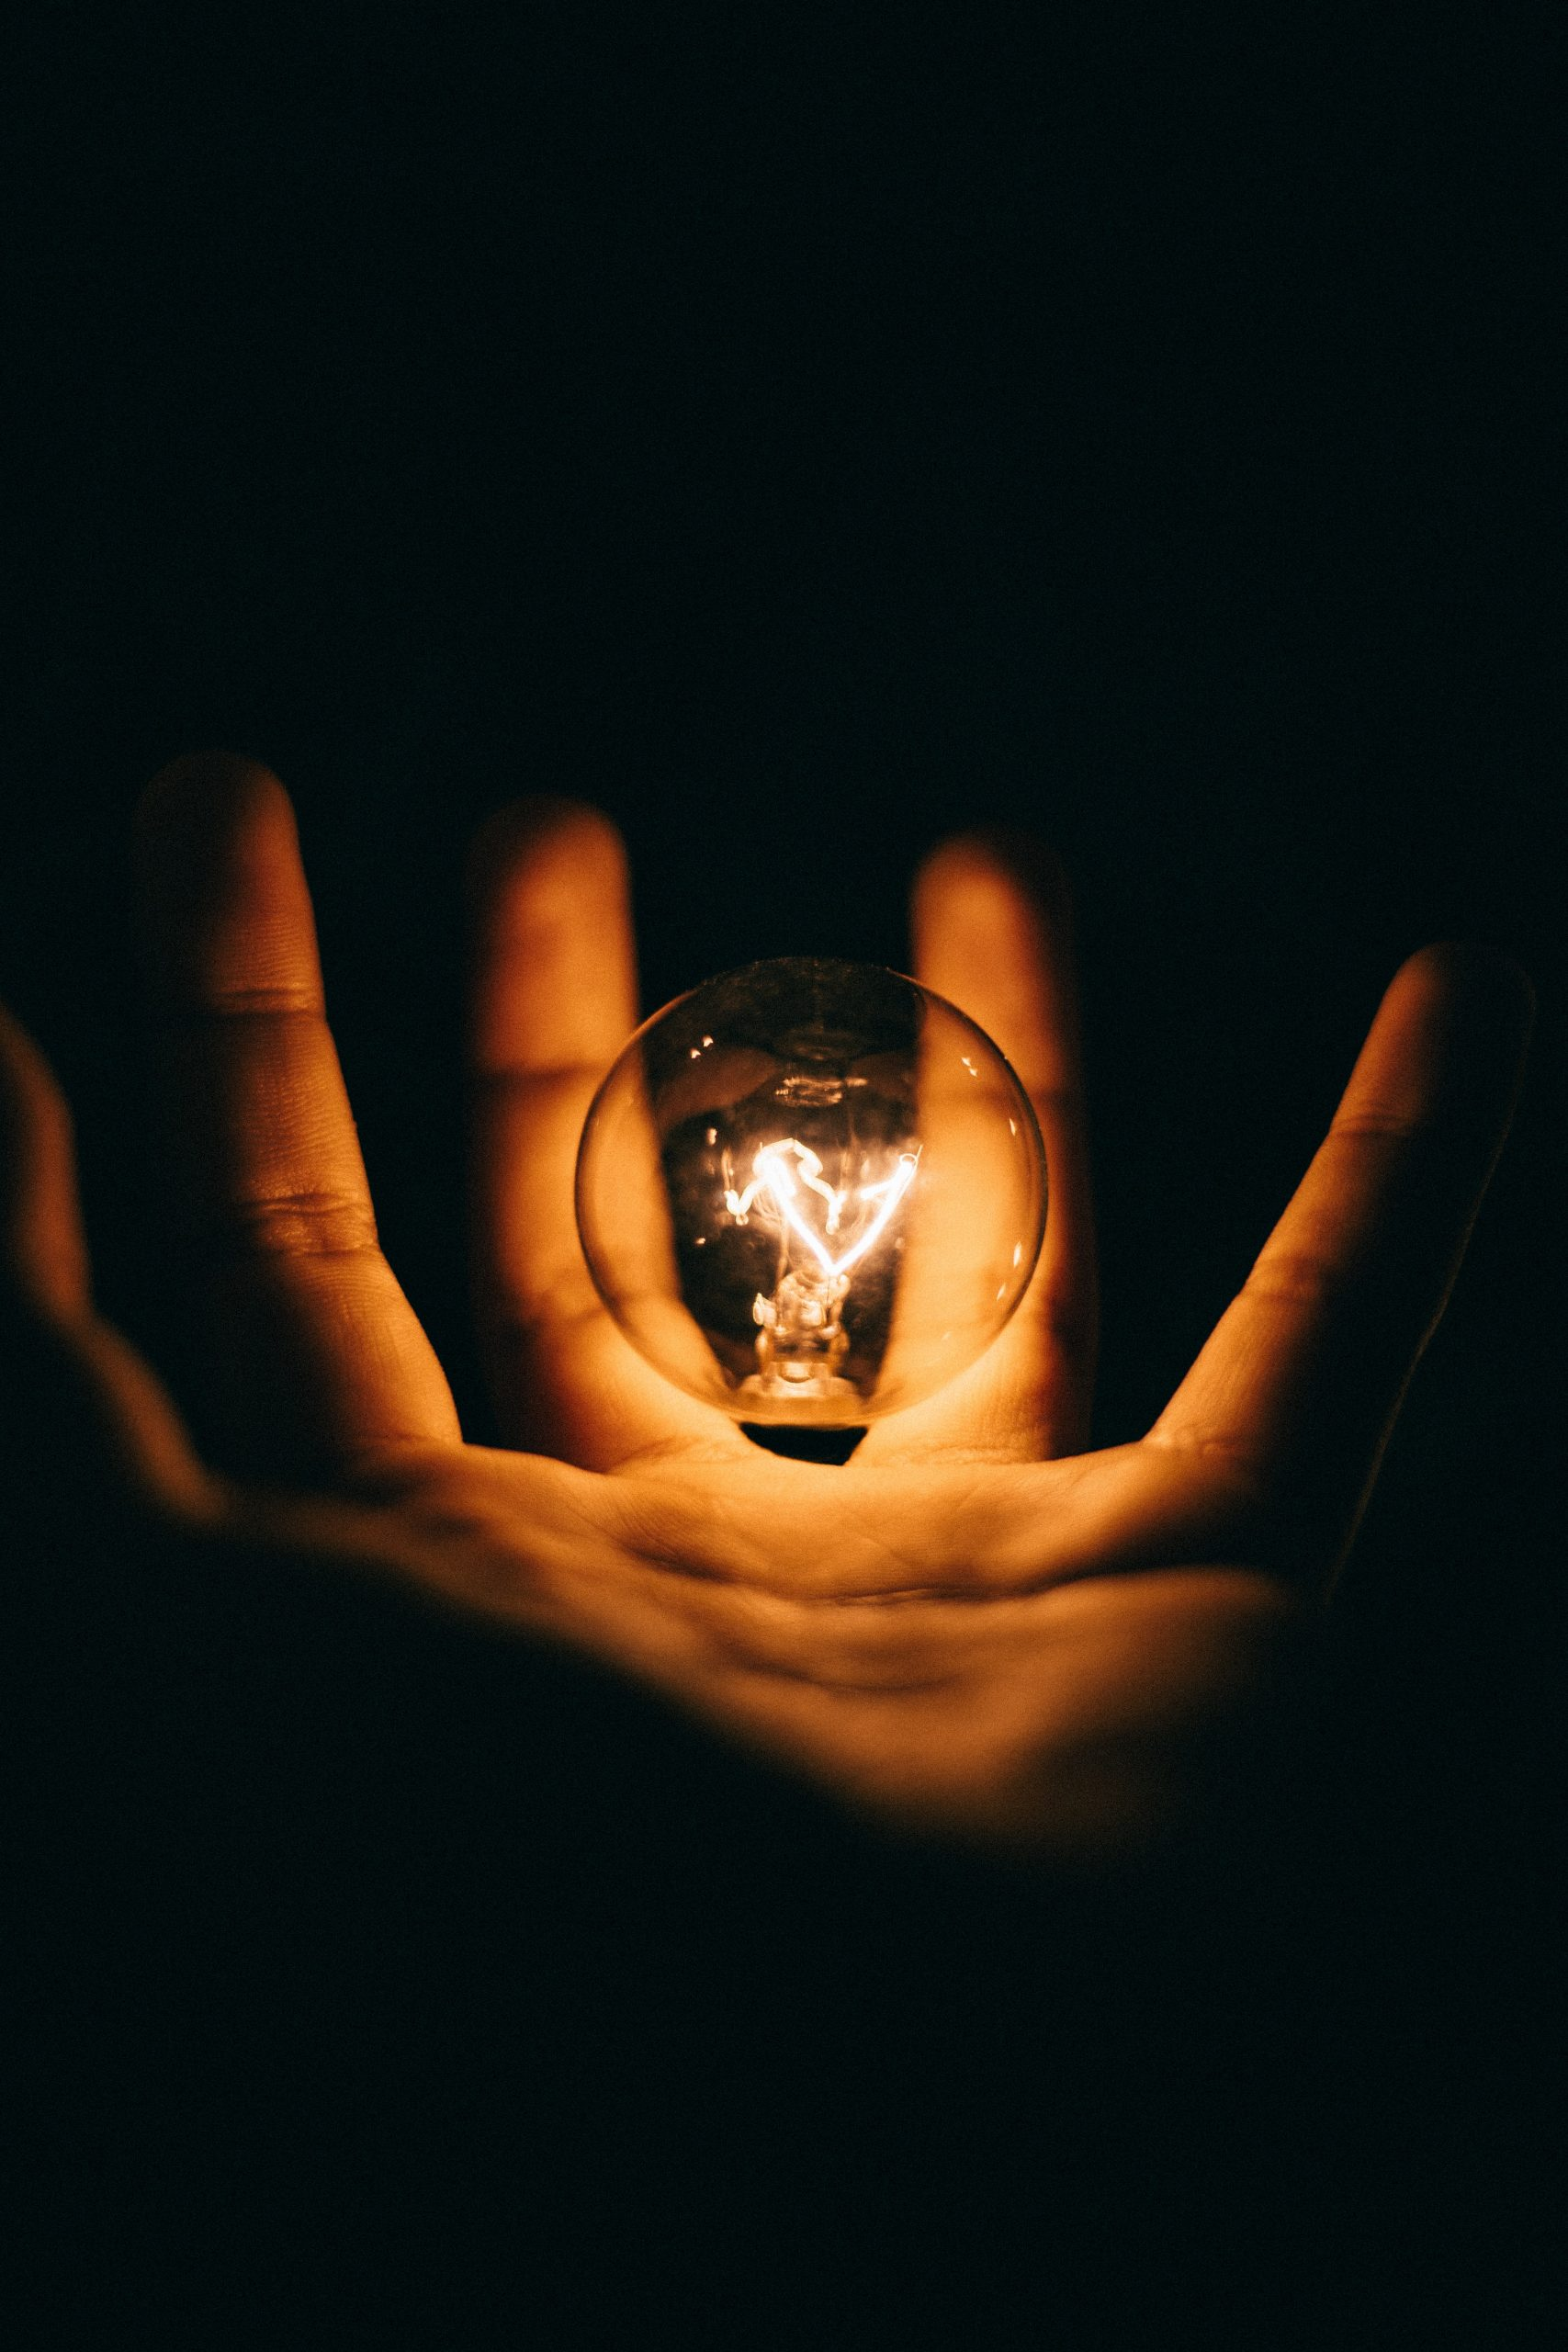 light bulb in palm of hand